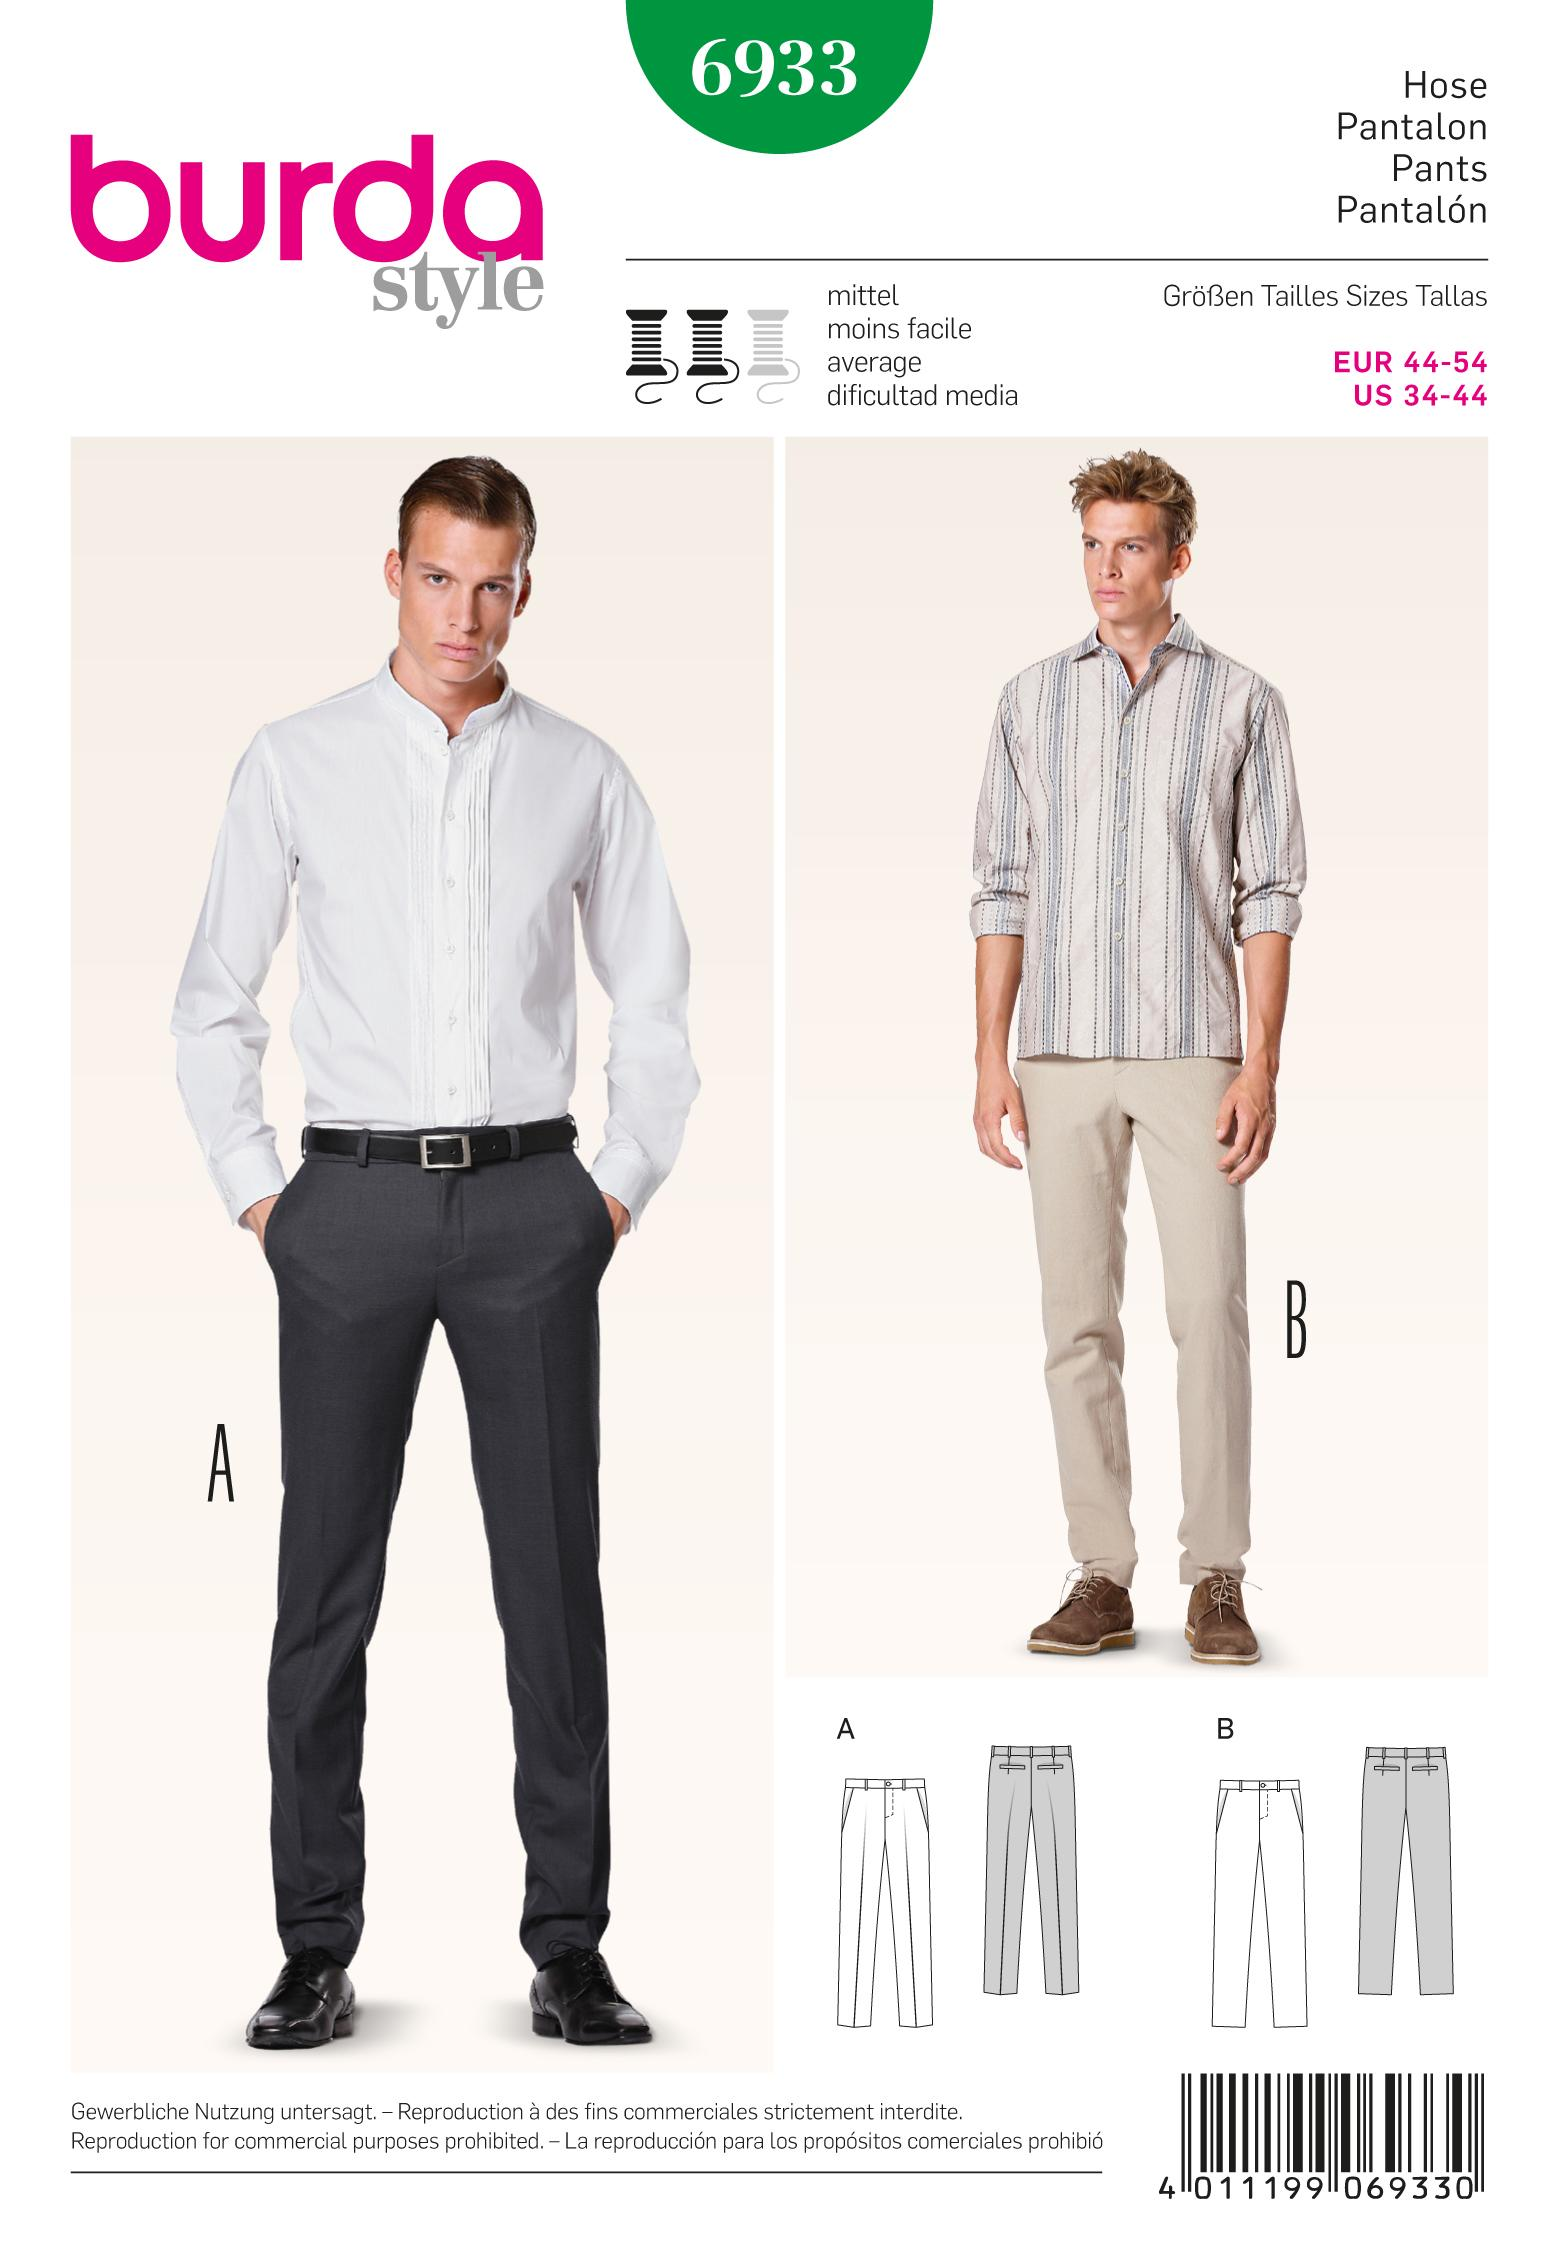 Burda B6933 Burda Menswear Sewing Pattern